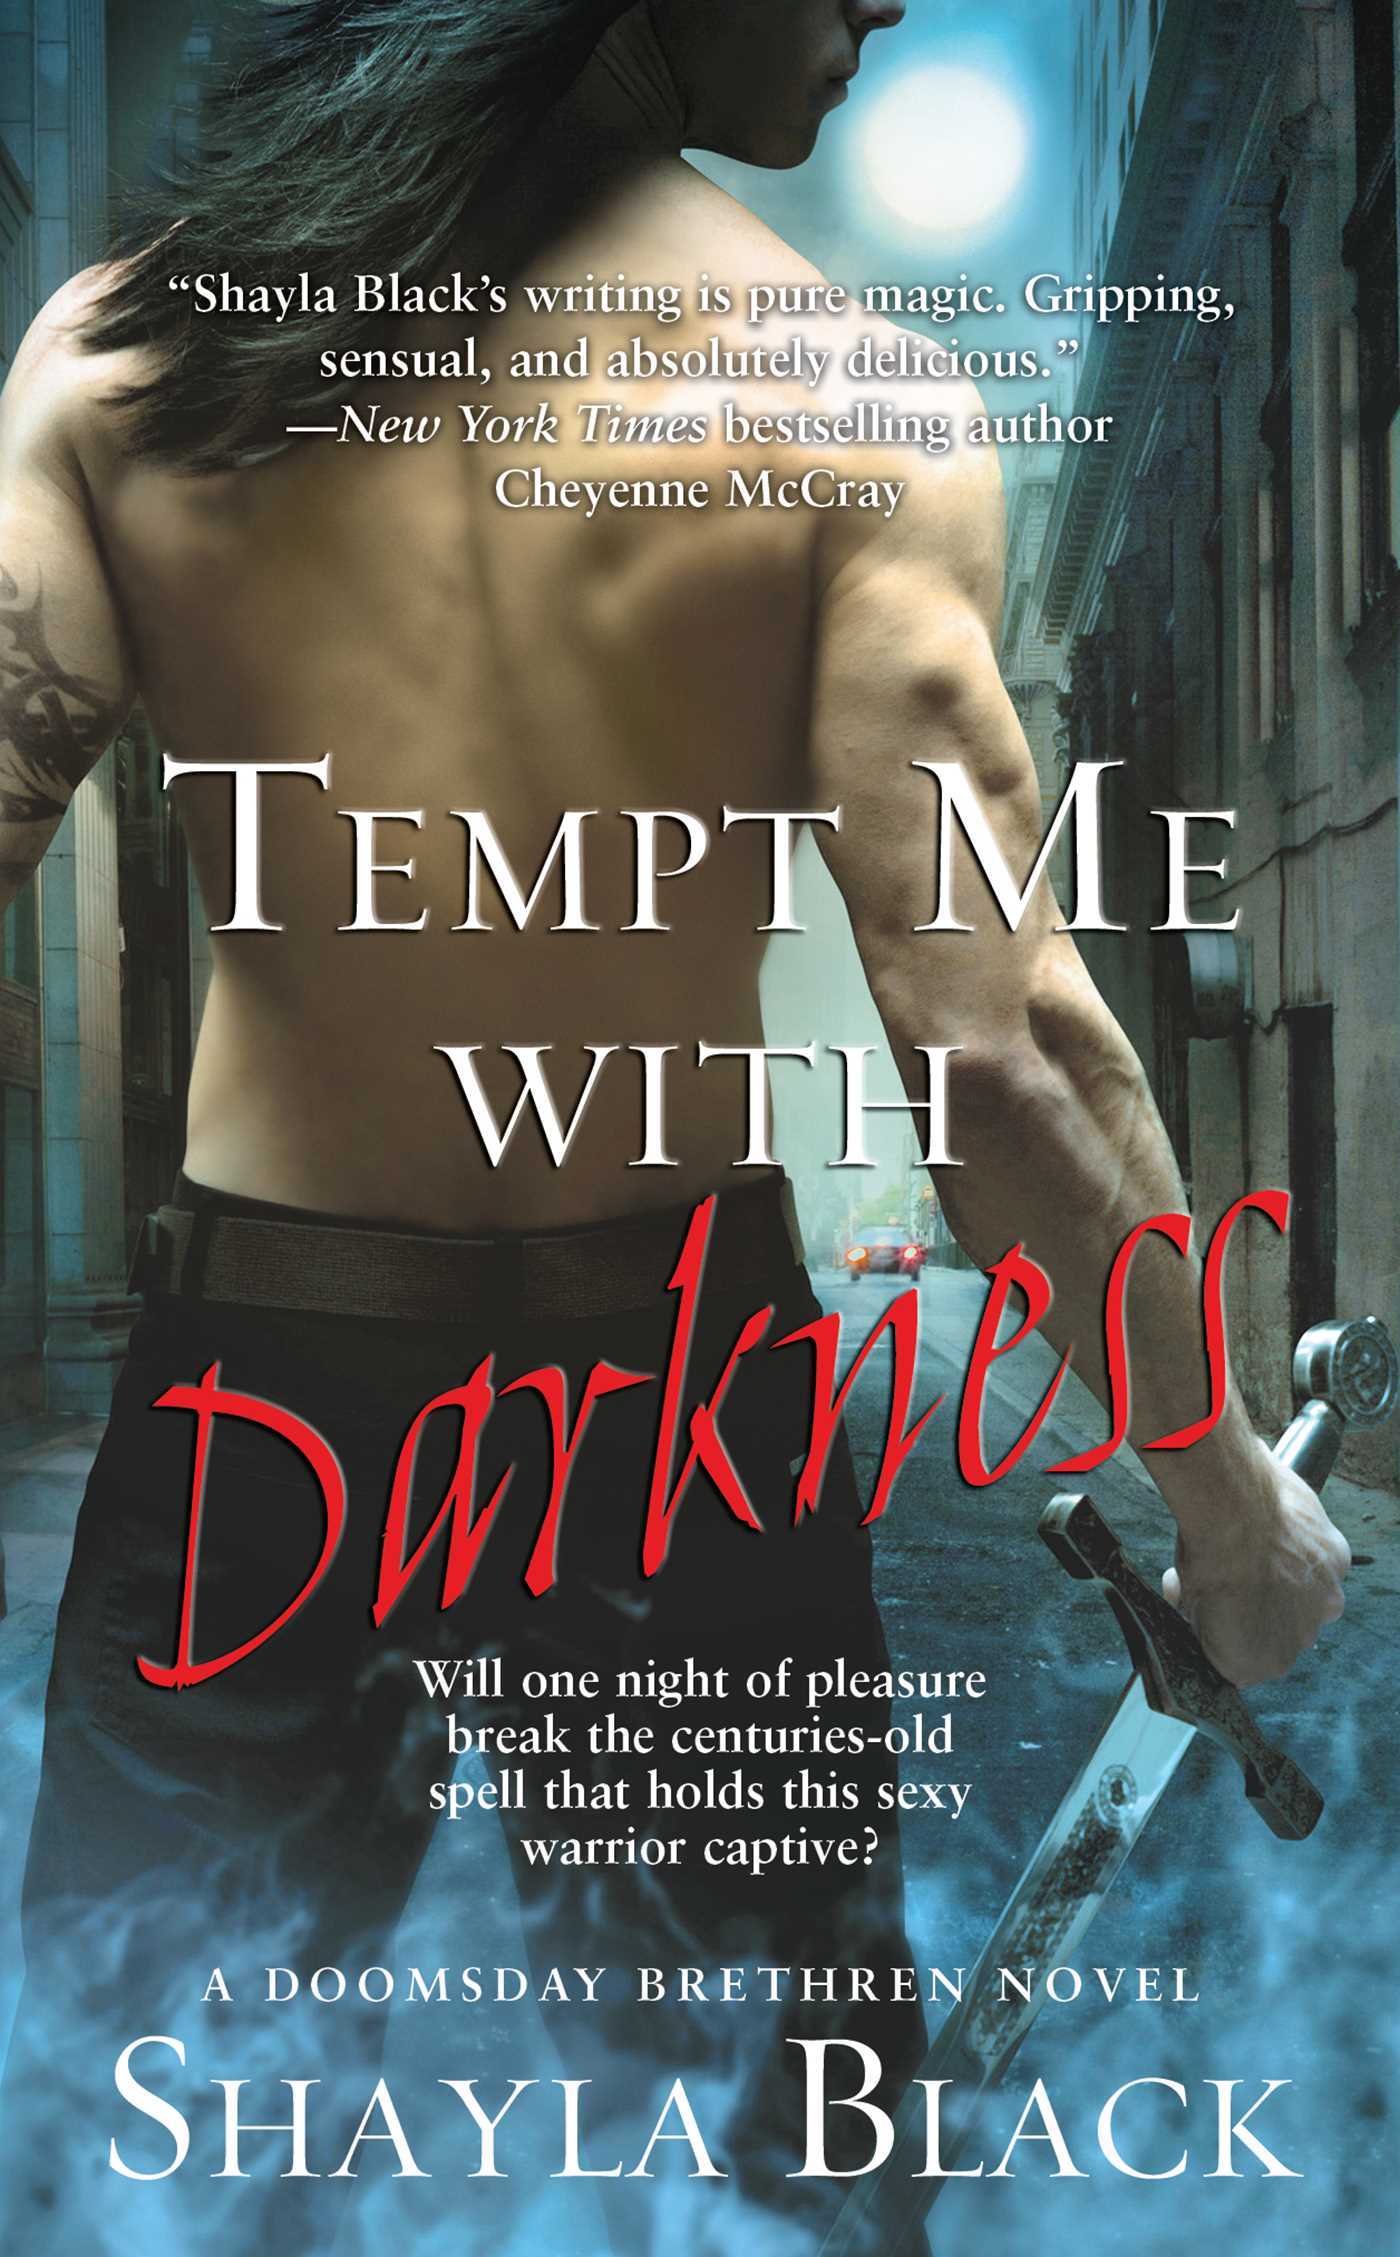 Tempt-me-with-darkness-9781416558583_hr